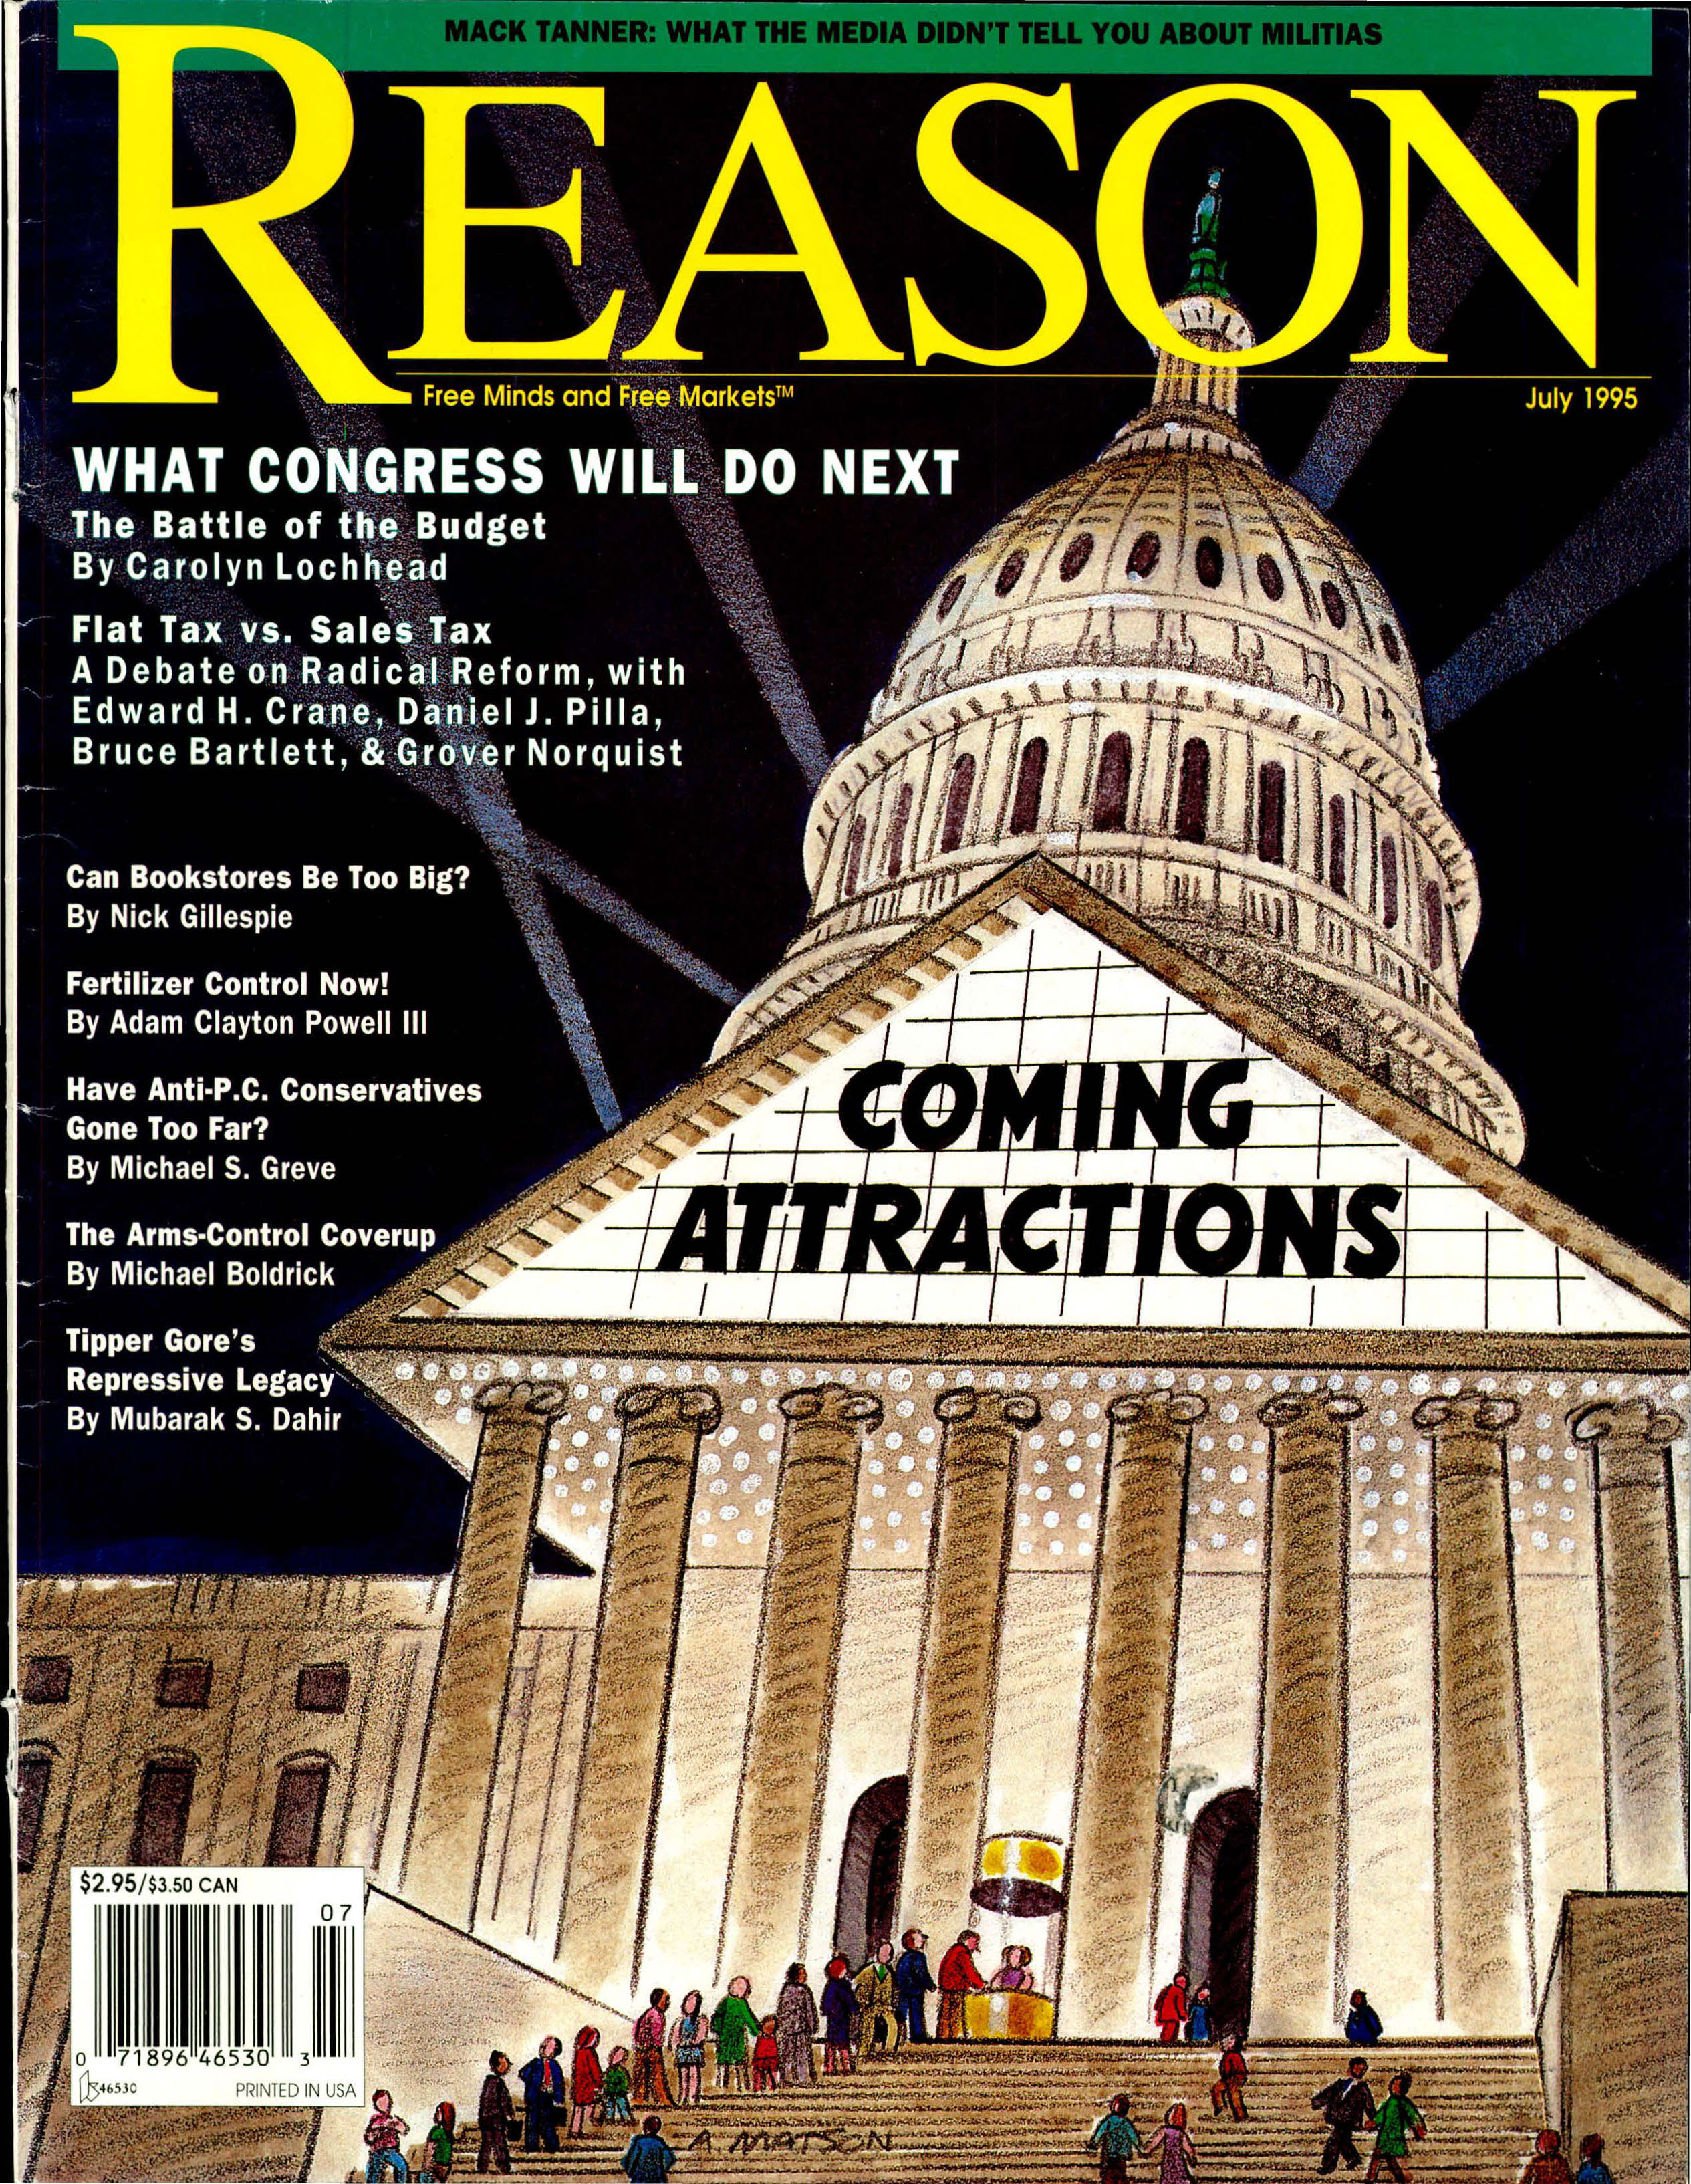 Reason Magazine, July 1995 cover image